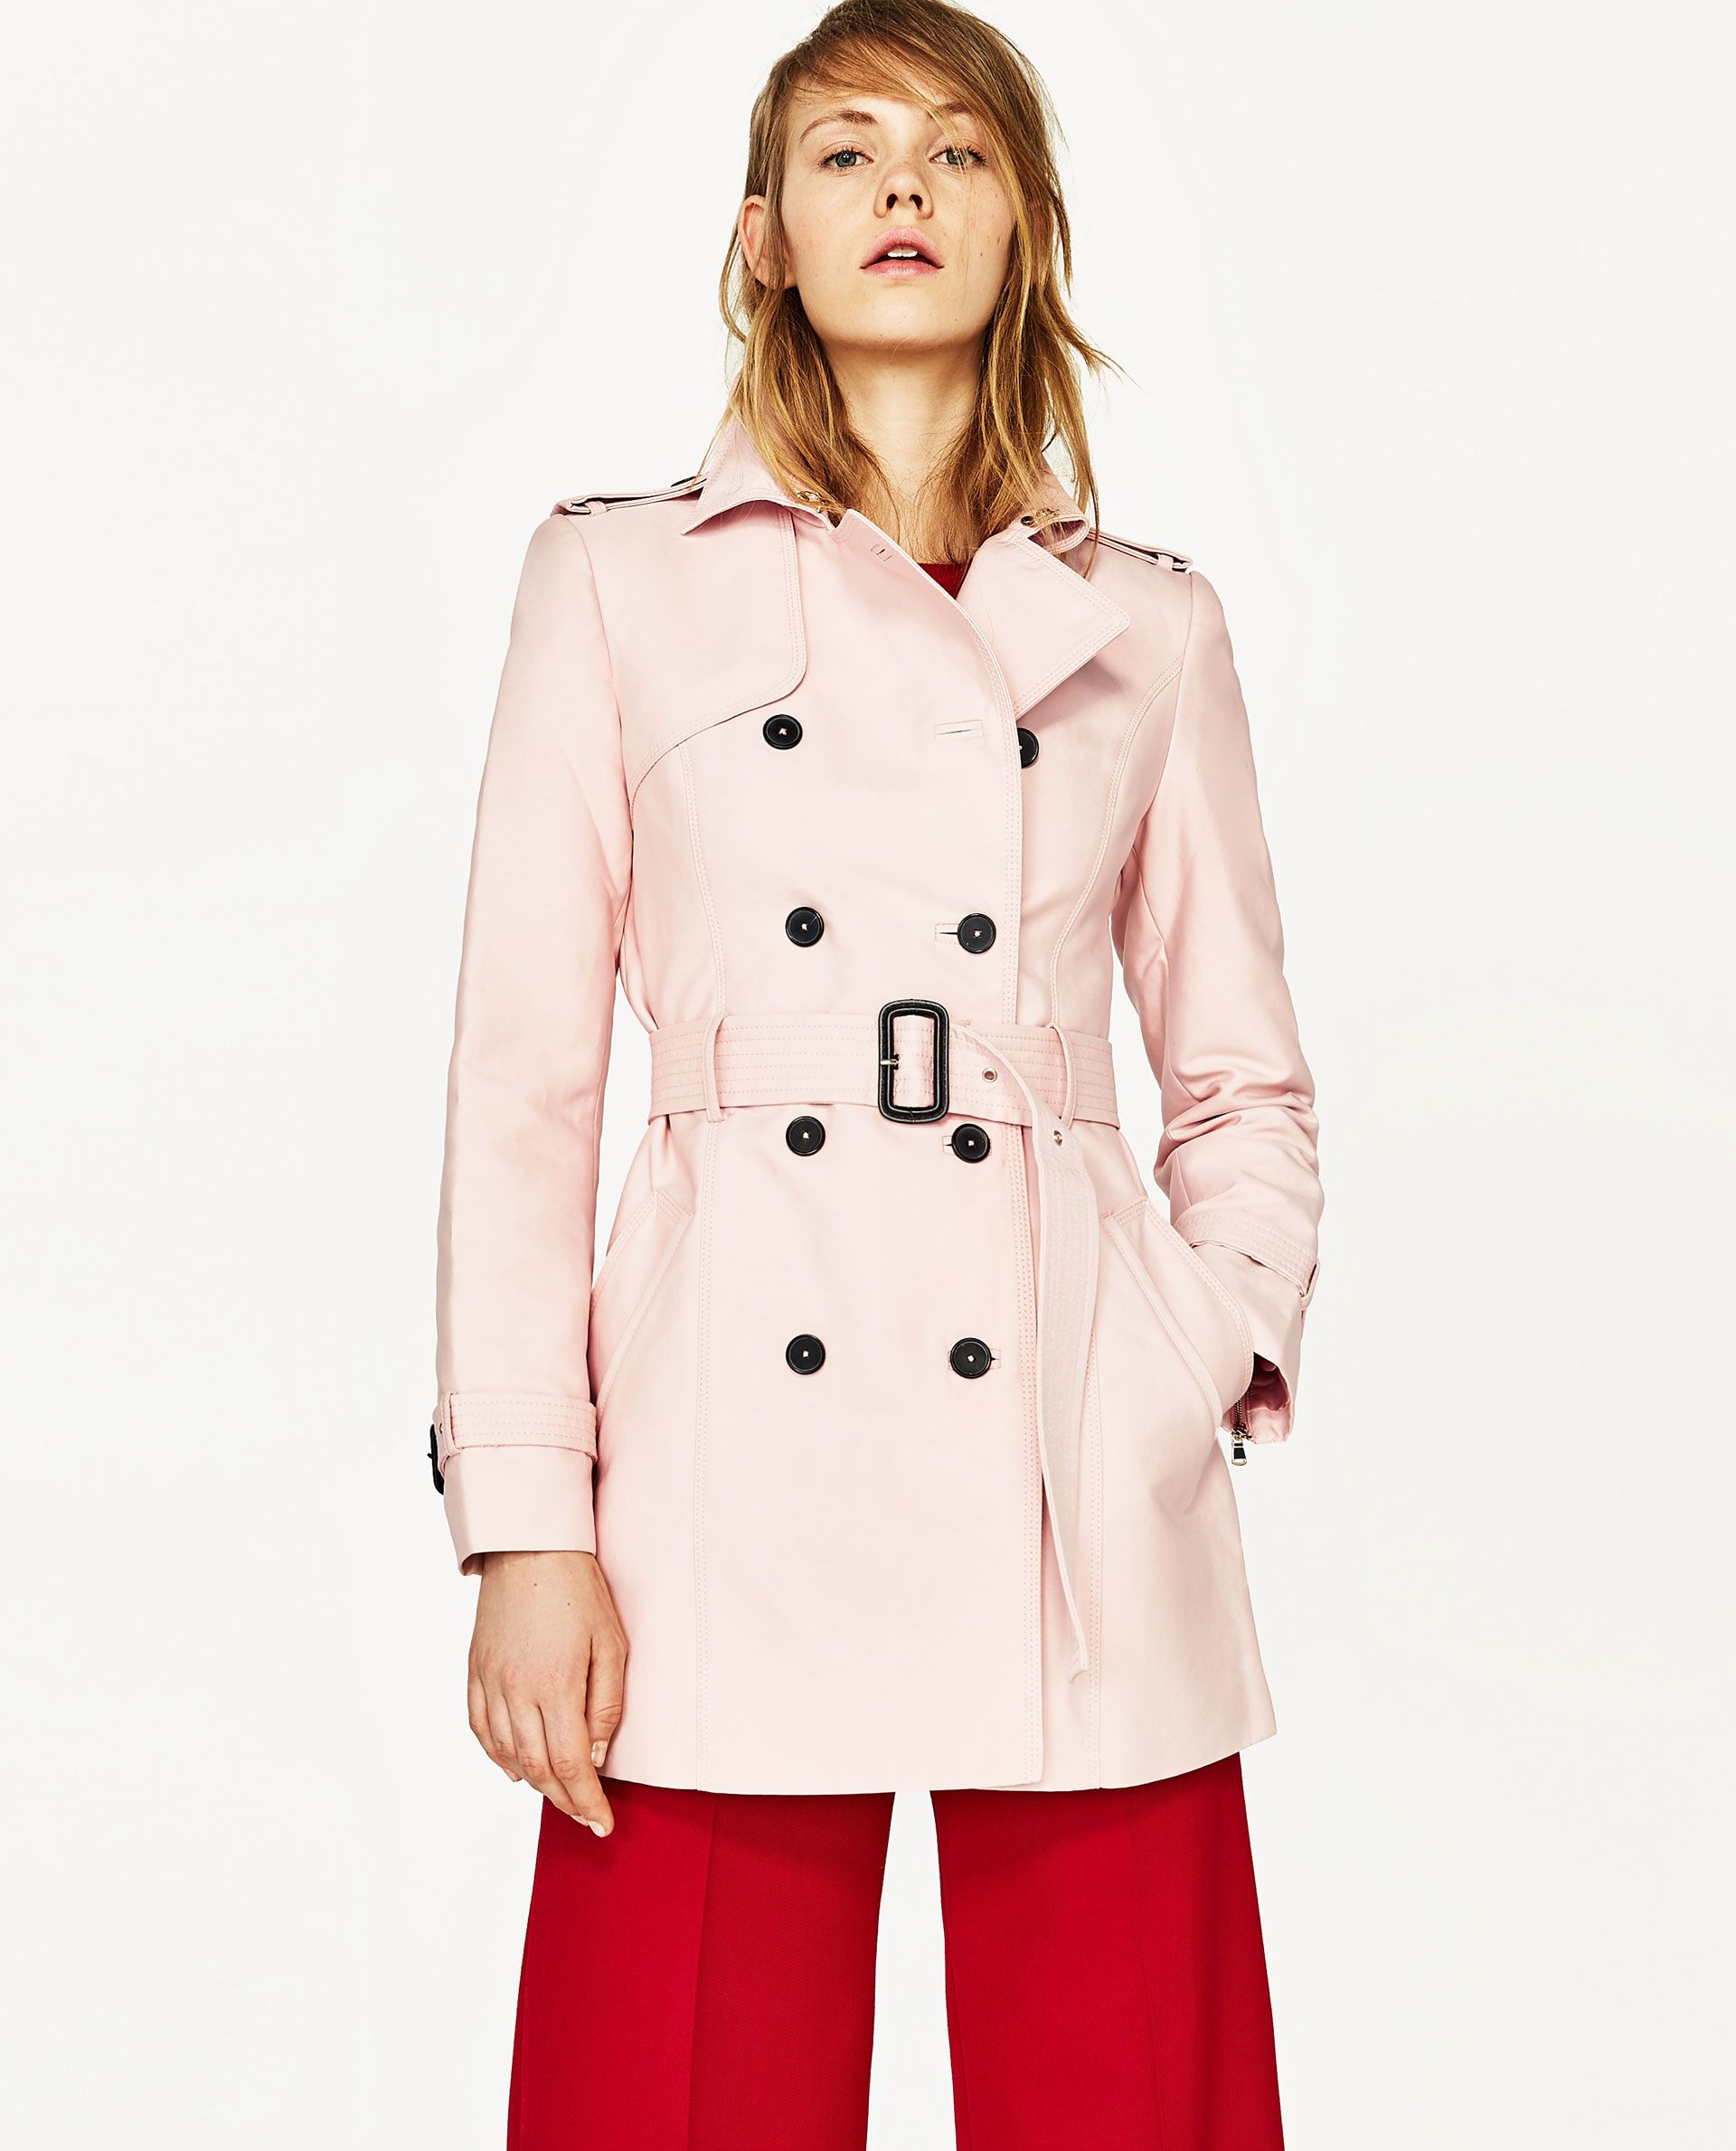 9cbc7c8699 ZARA  PASTEL PINK DOUBLE BREASTED TRENCH COAT